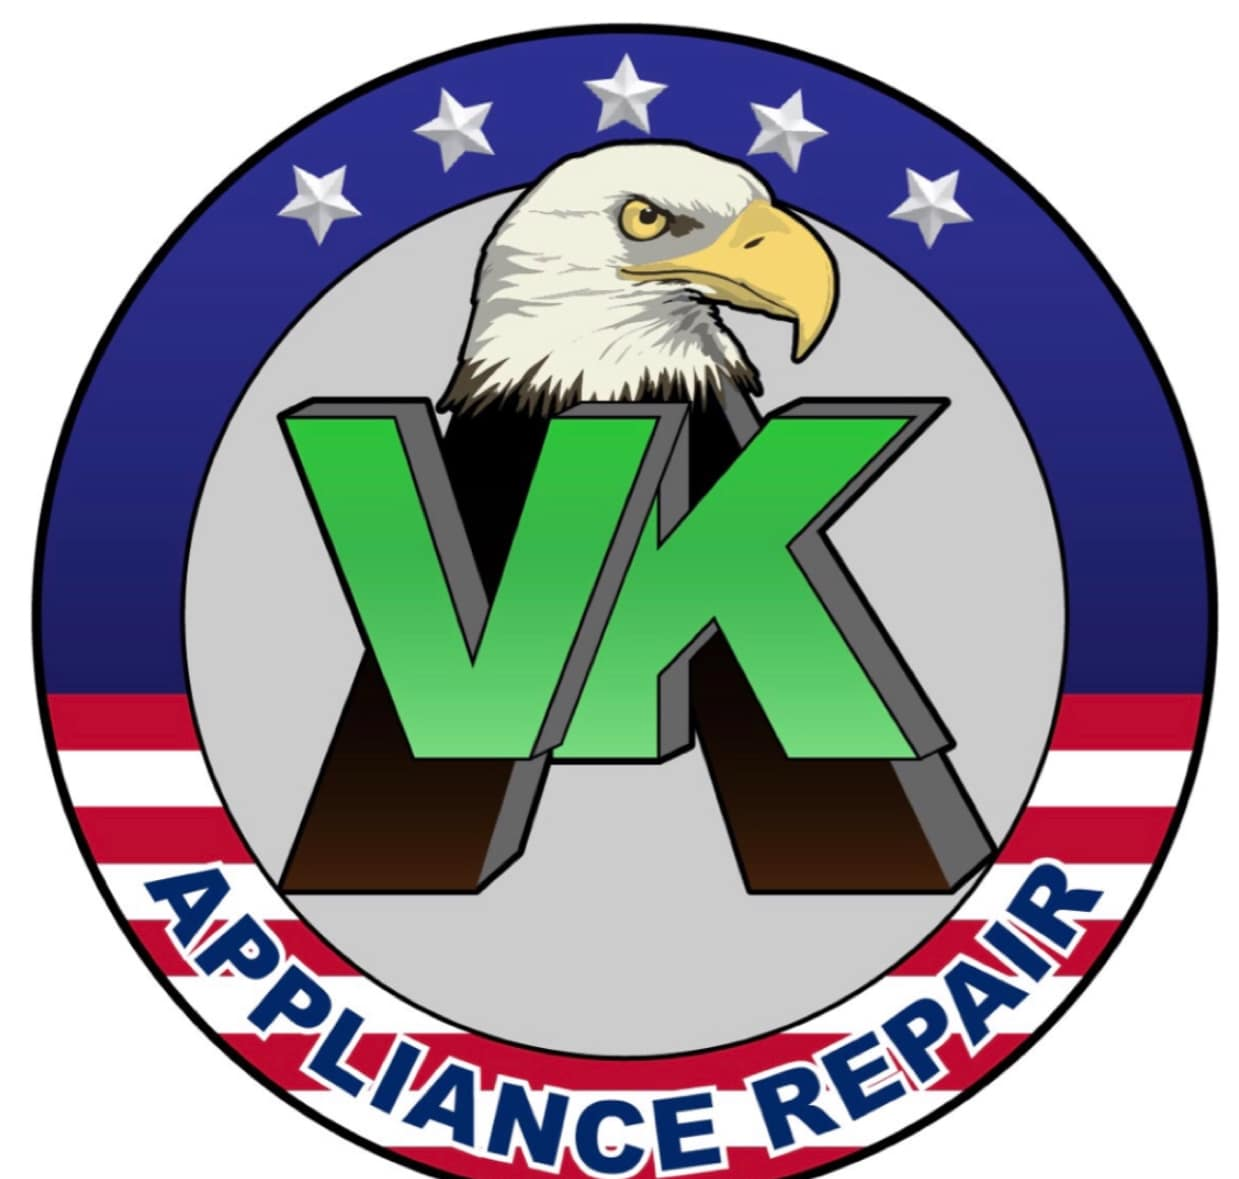 VK Appliance Repair